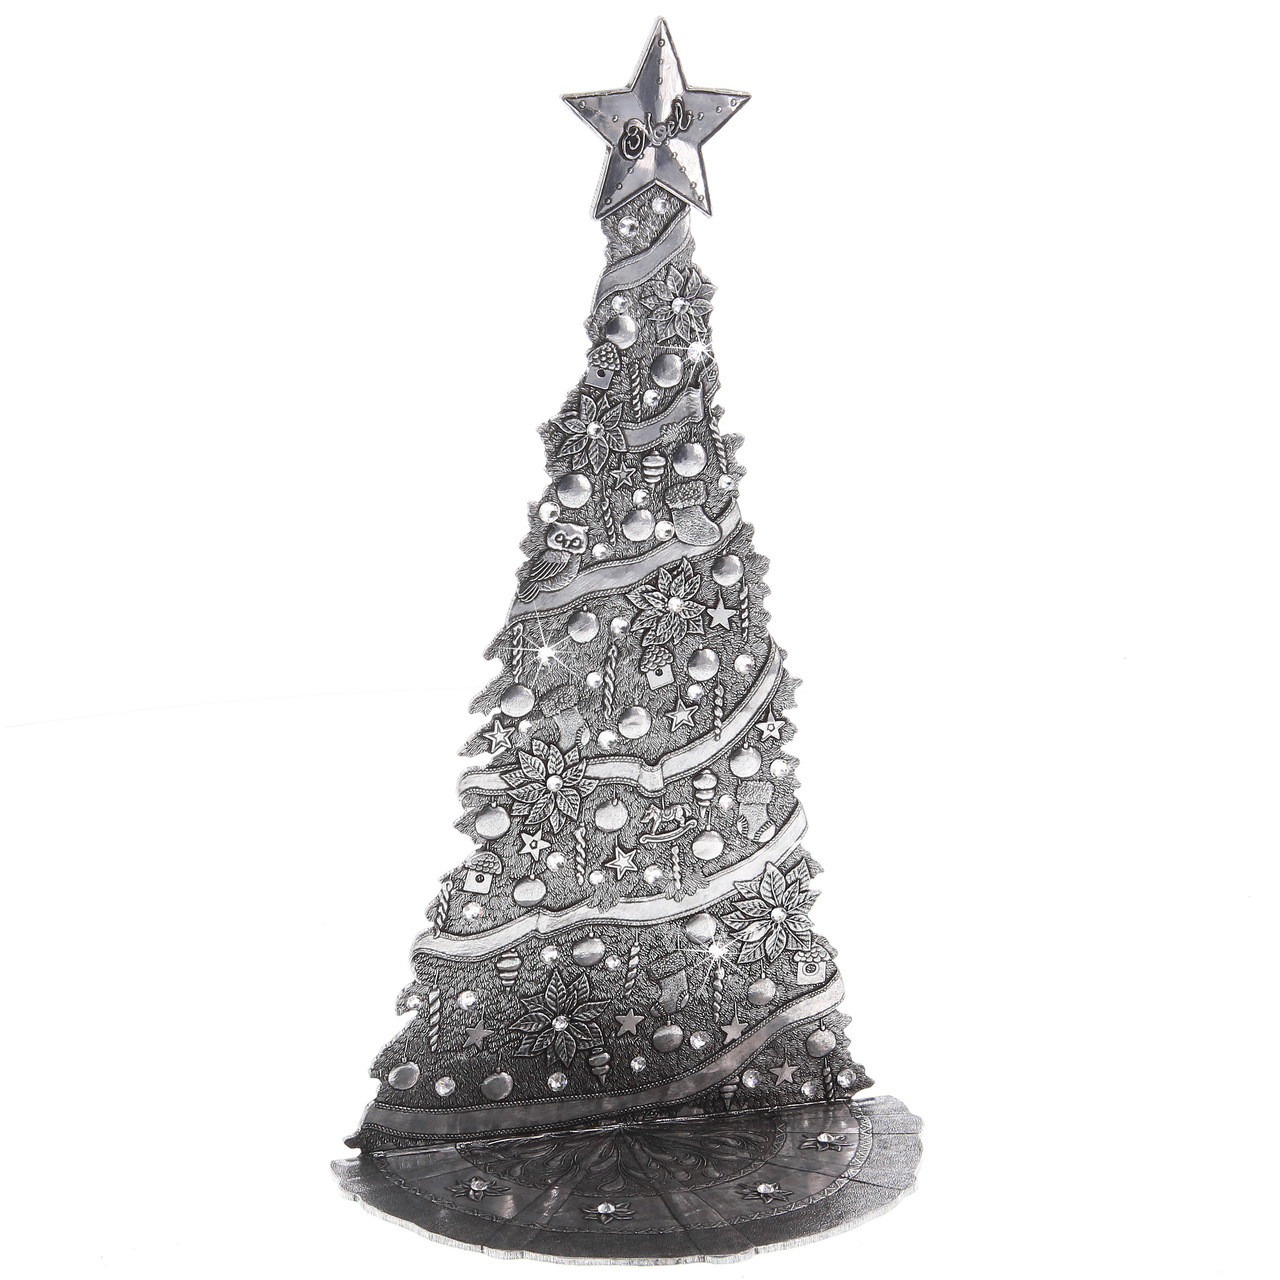 Christmas Tree Figurine | Shop Holiday Decor at Wendell August Forge